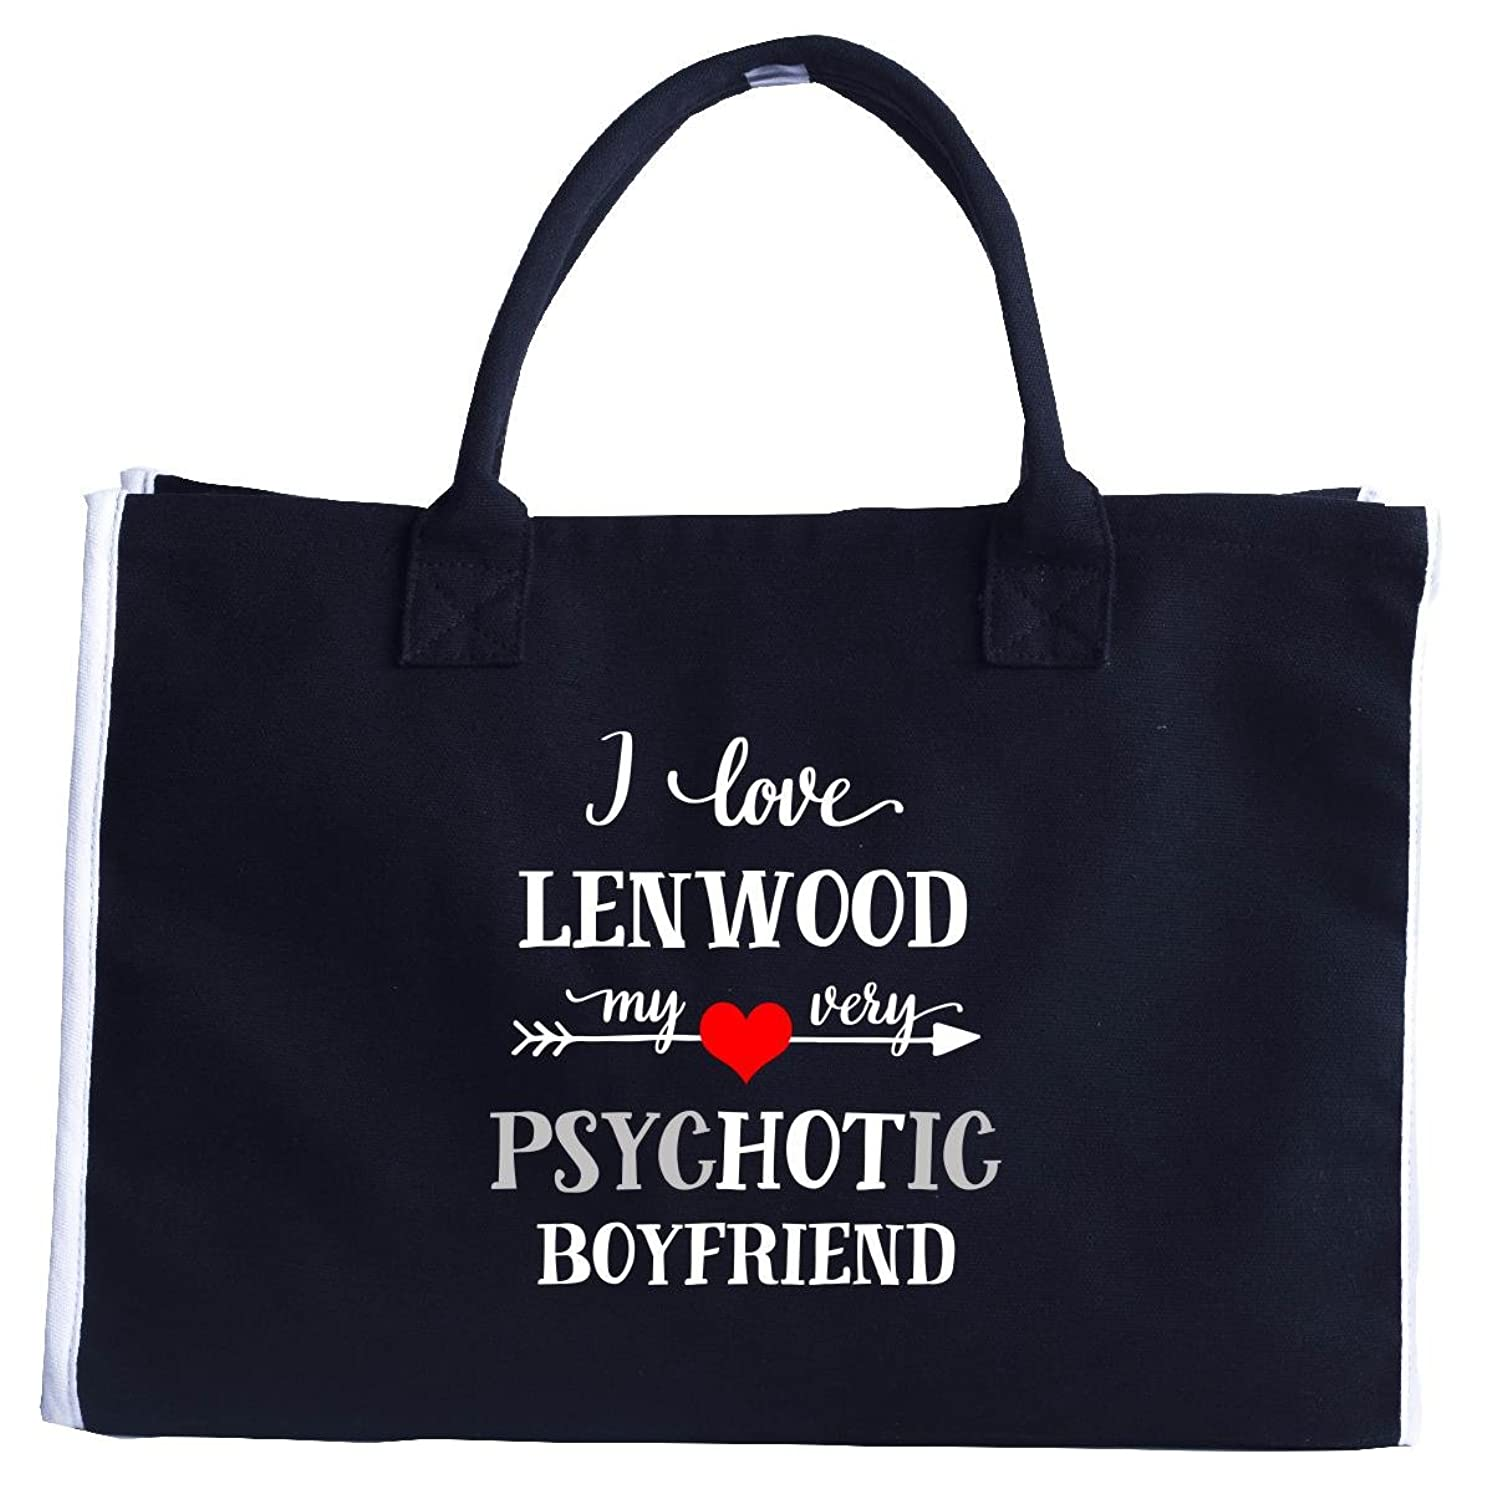 I Love Lenwood My Very Psychotic Boyfriend. Gift For Her - Fashion Tote Bag